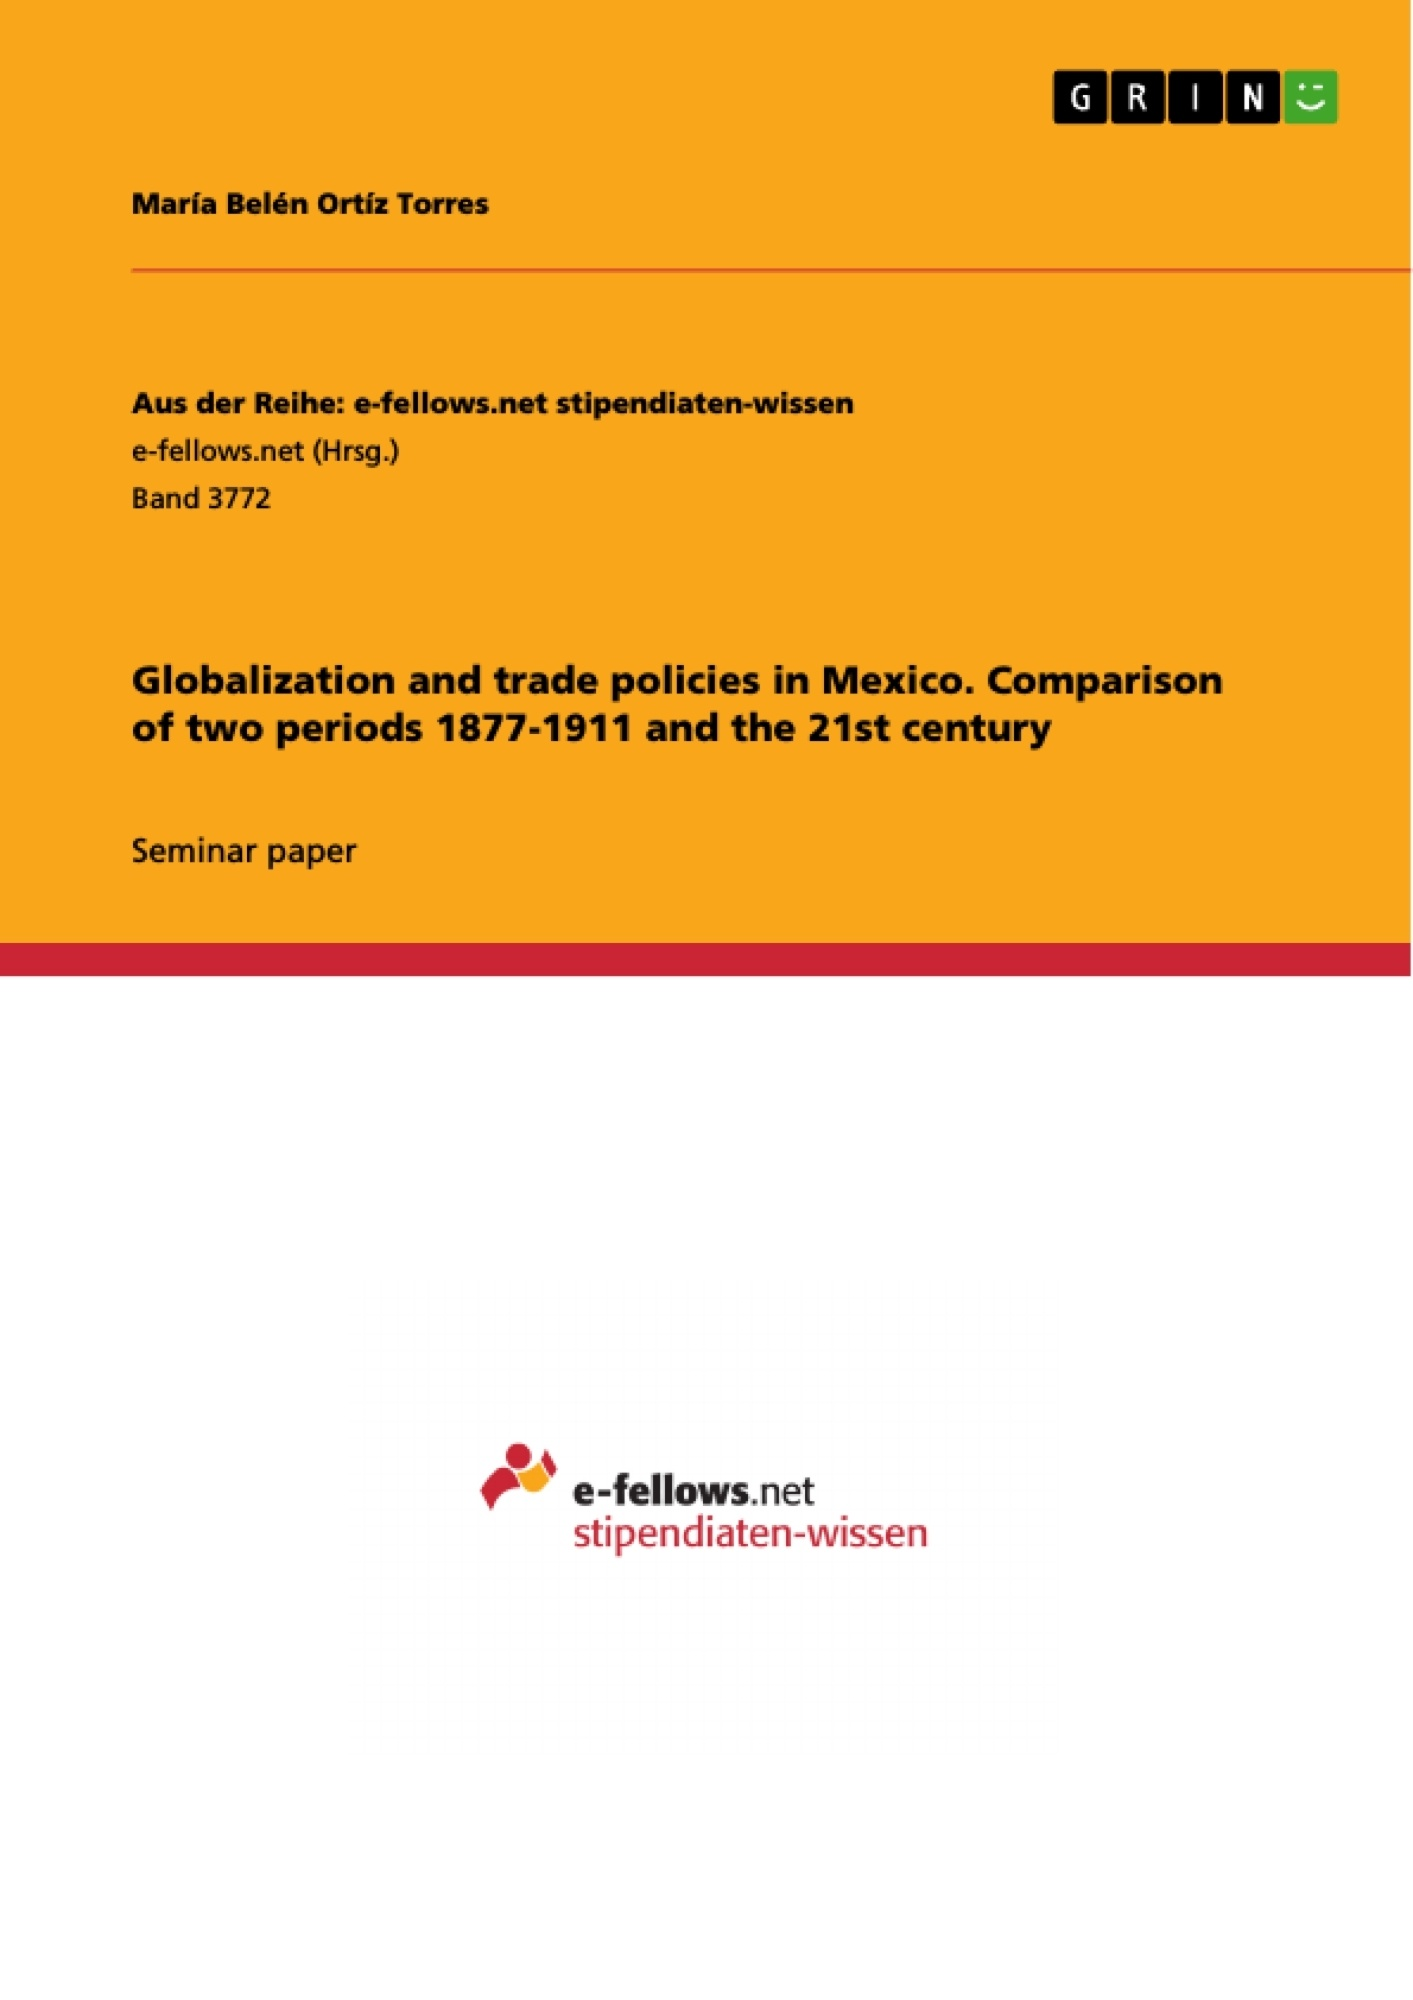 Title: Globalization and trade policies in Mexico. Comparison of two periods 1877-1911 and the 21st century